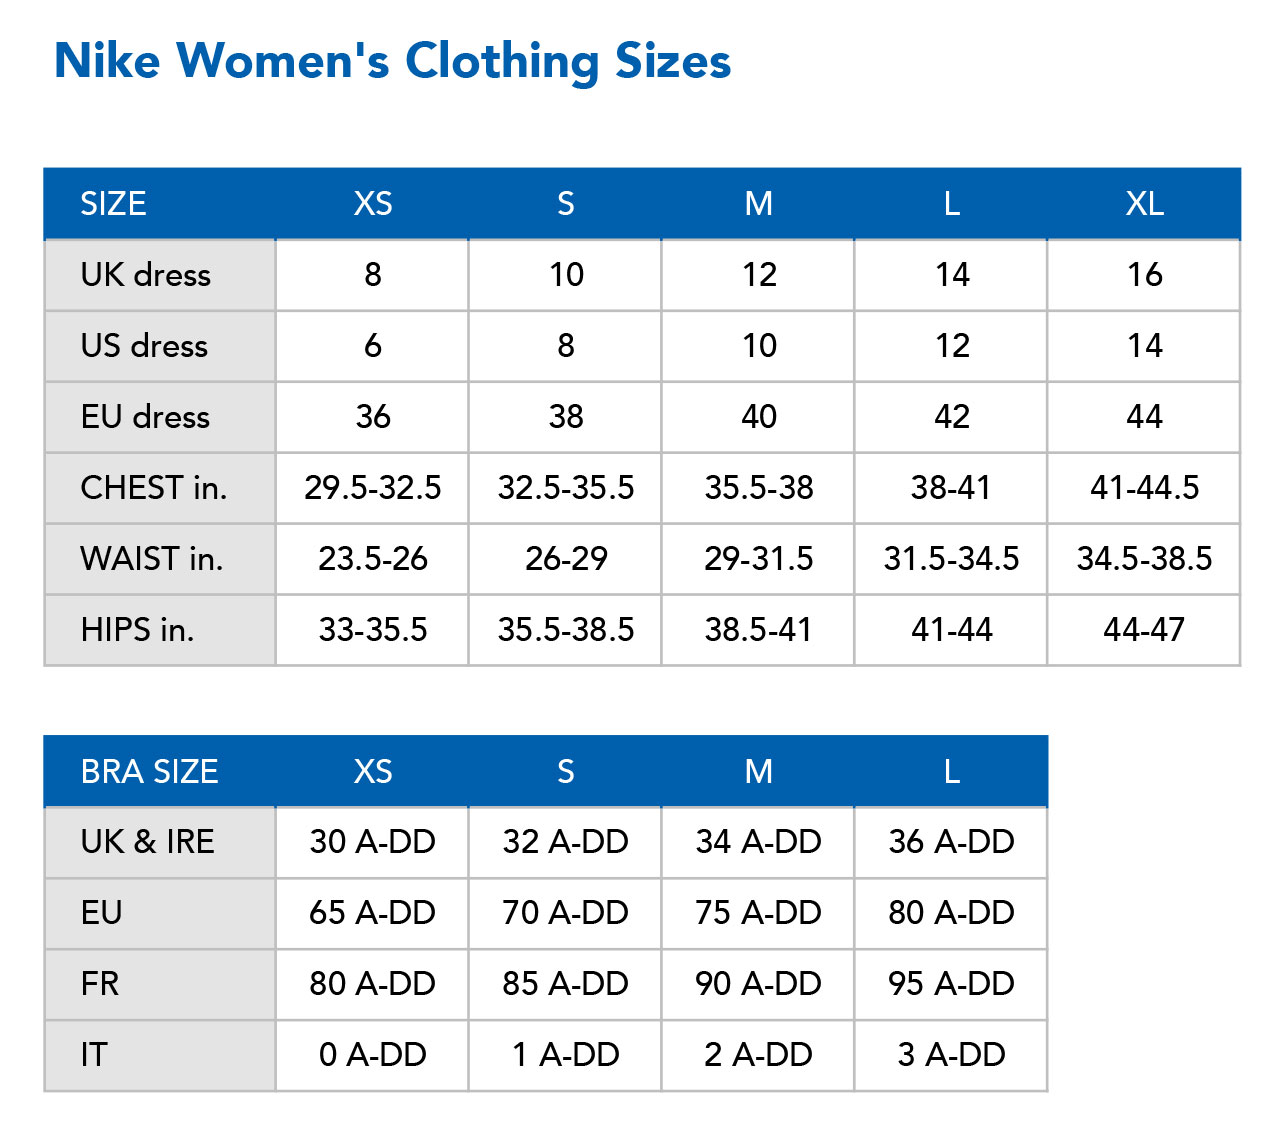 Menswear sizing When selecting your size, we recommend you refer to our size guide to help you choose the right fit. If you are still unsure, the customer service team can offer expert advice to help you select the best size - simply email enquiries@archivesnapug.cf